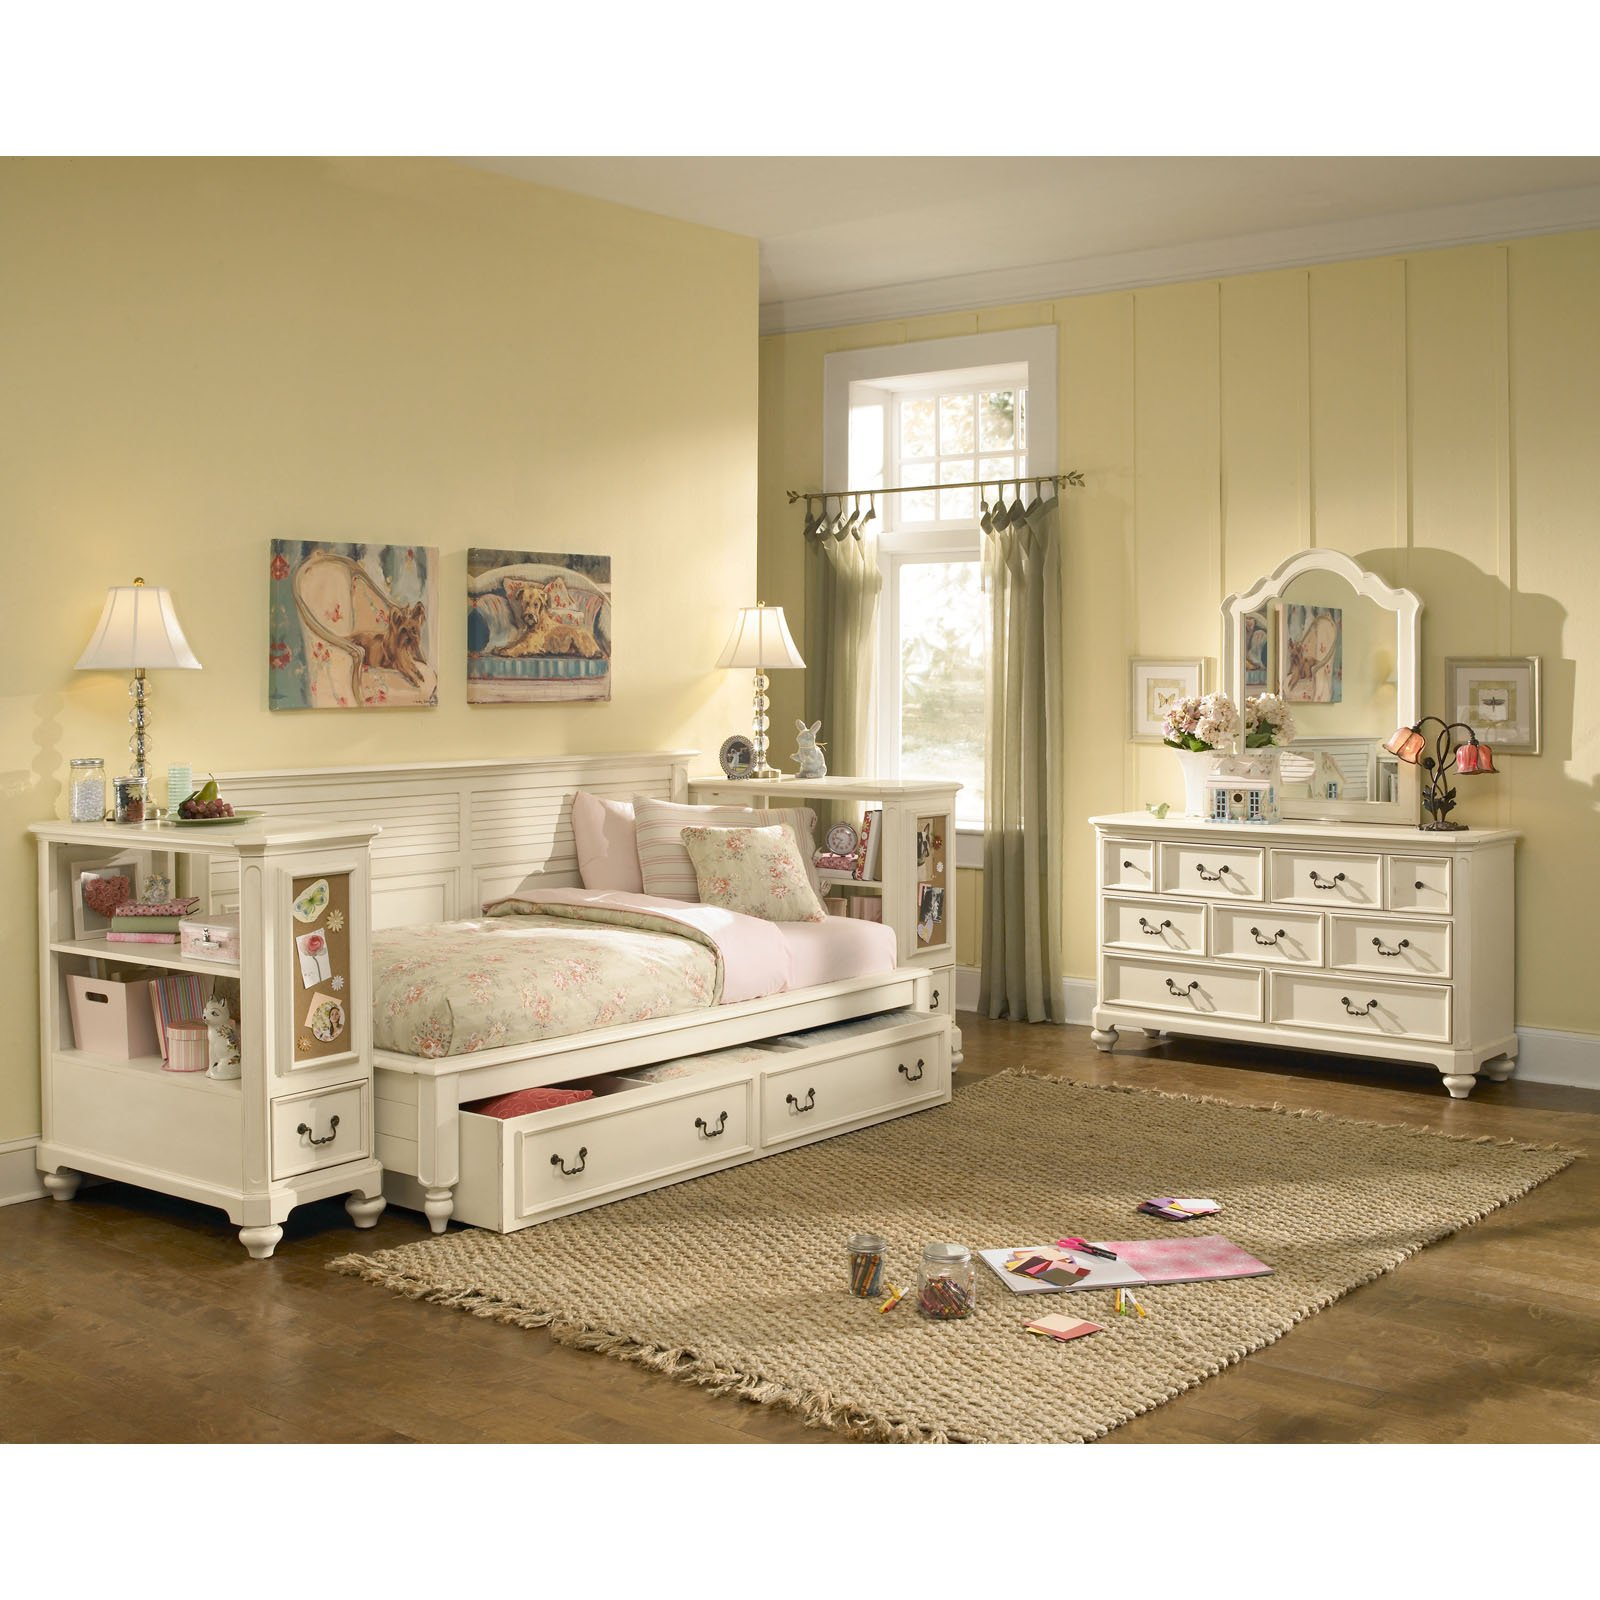 Design Daybeds With Storage daybeds with storage homesfeed antique white wooden and drawers laminate floor